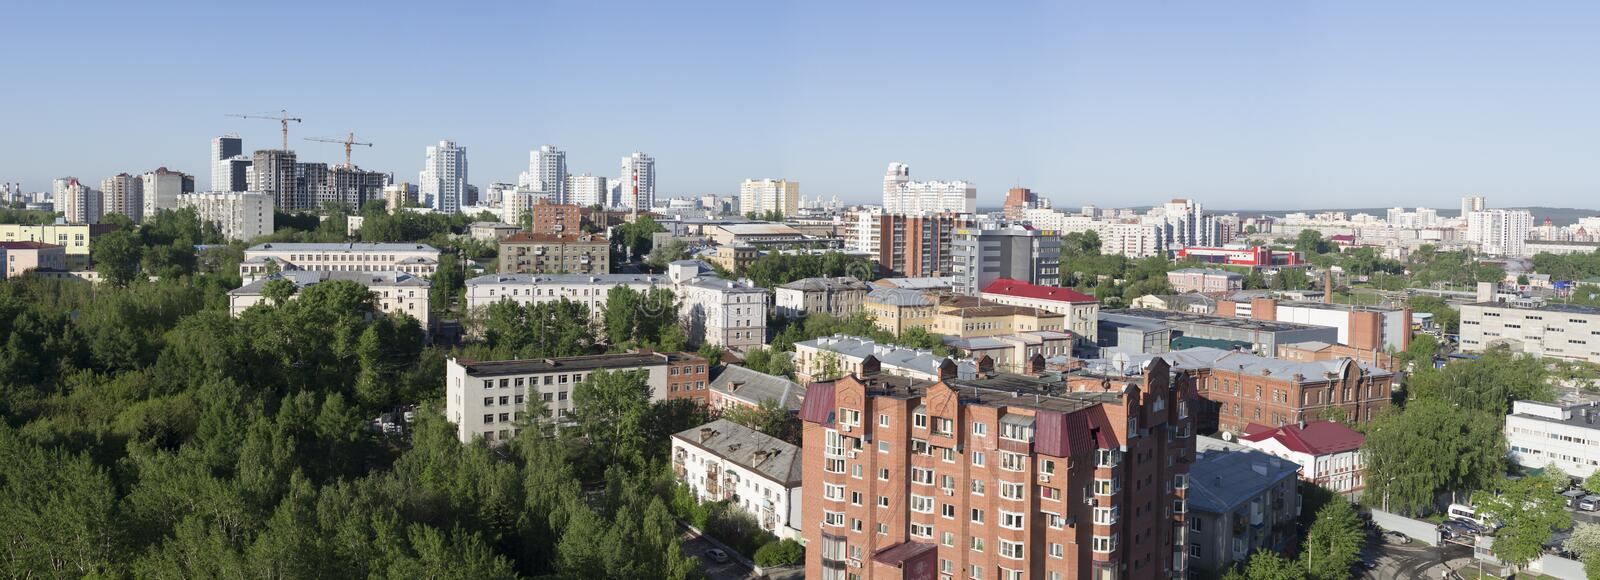 Russia. City Ekaterinburg. royalty free stock photos